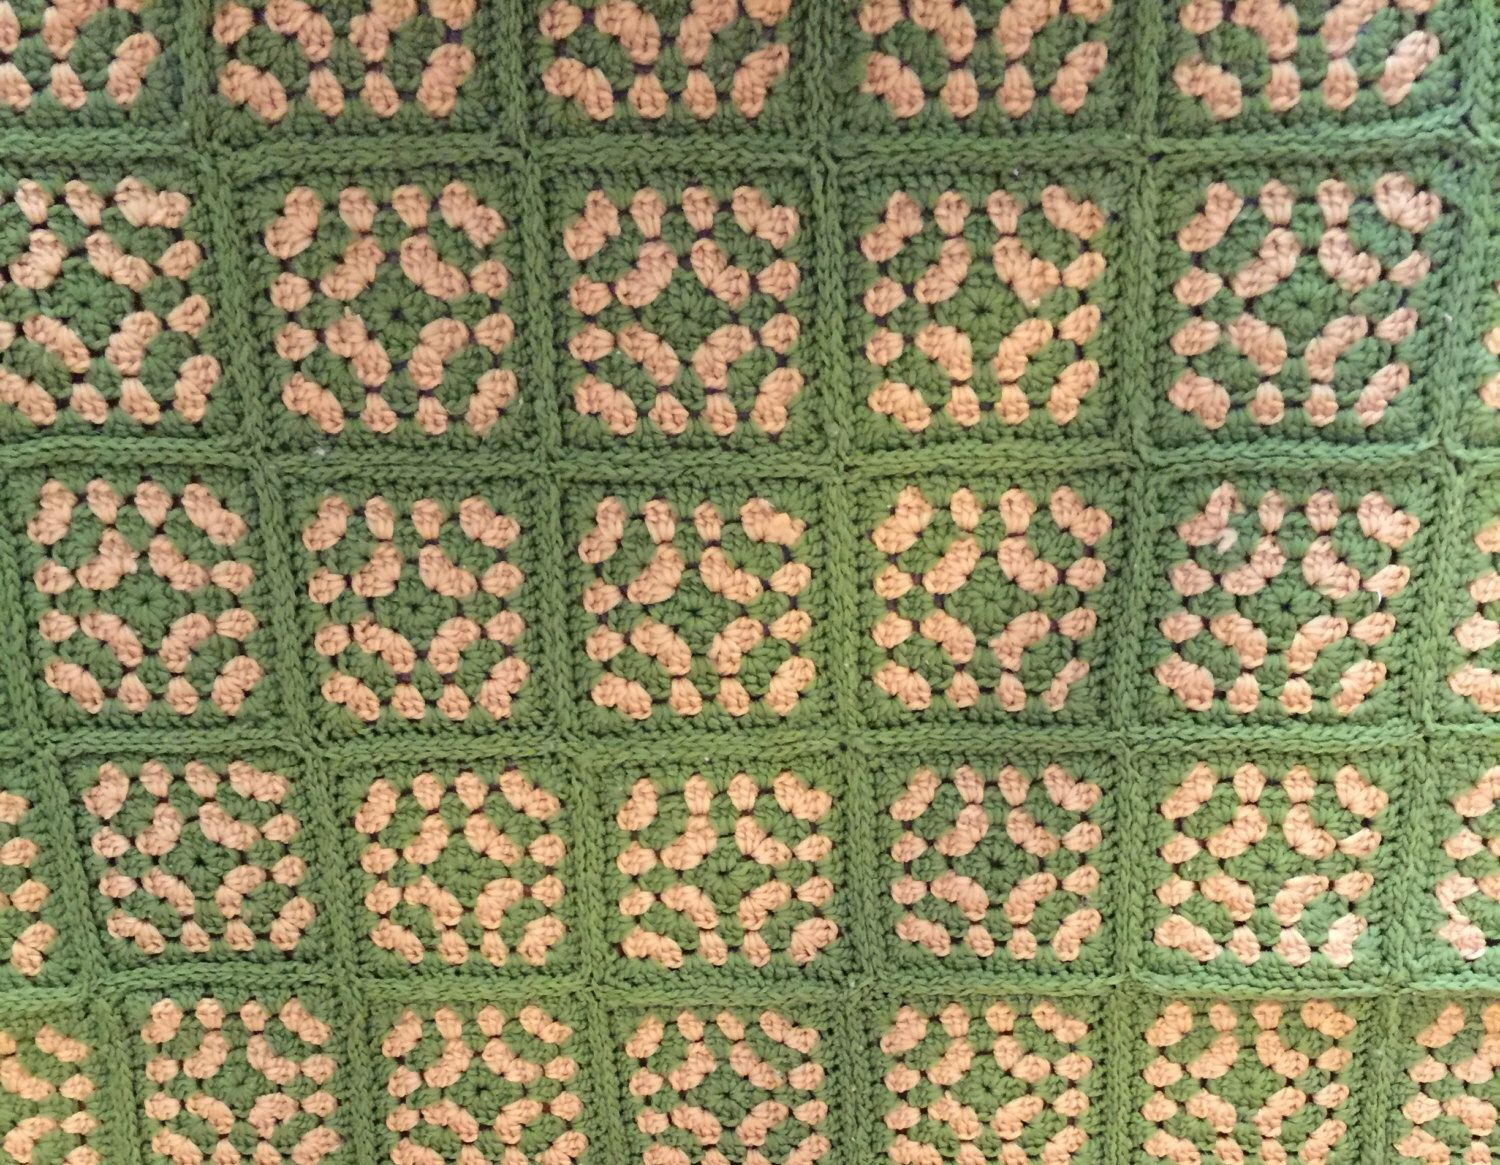 Afghan Blanket 100% Wool with Green and Tan Granny Squares by HautelAudubon on Etsy https://www.etsy.com/listing/468280363/afghan-blanket-100-wool-with-green-and